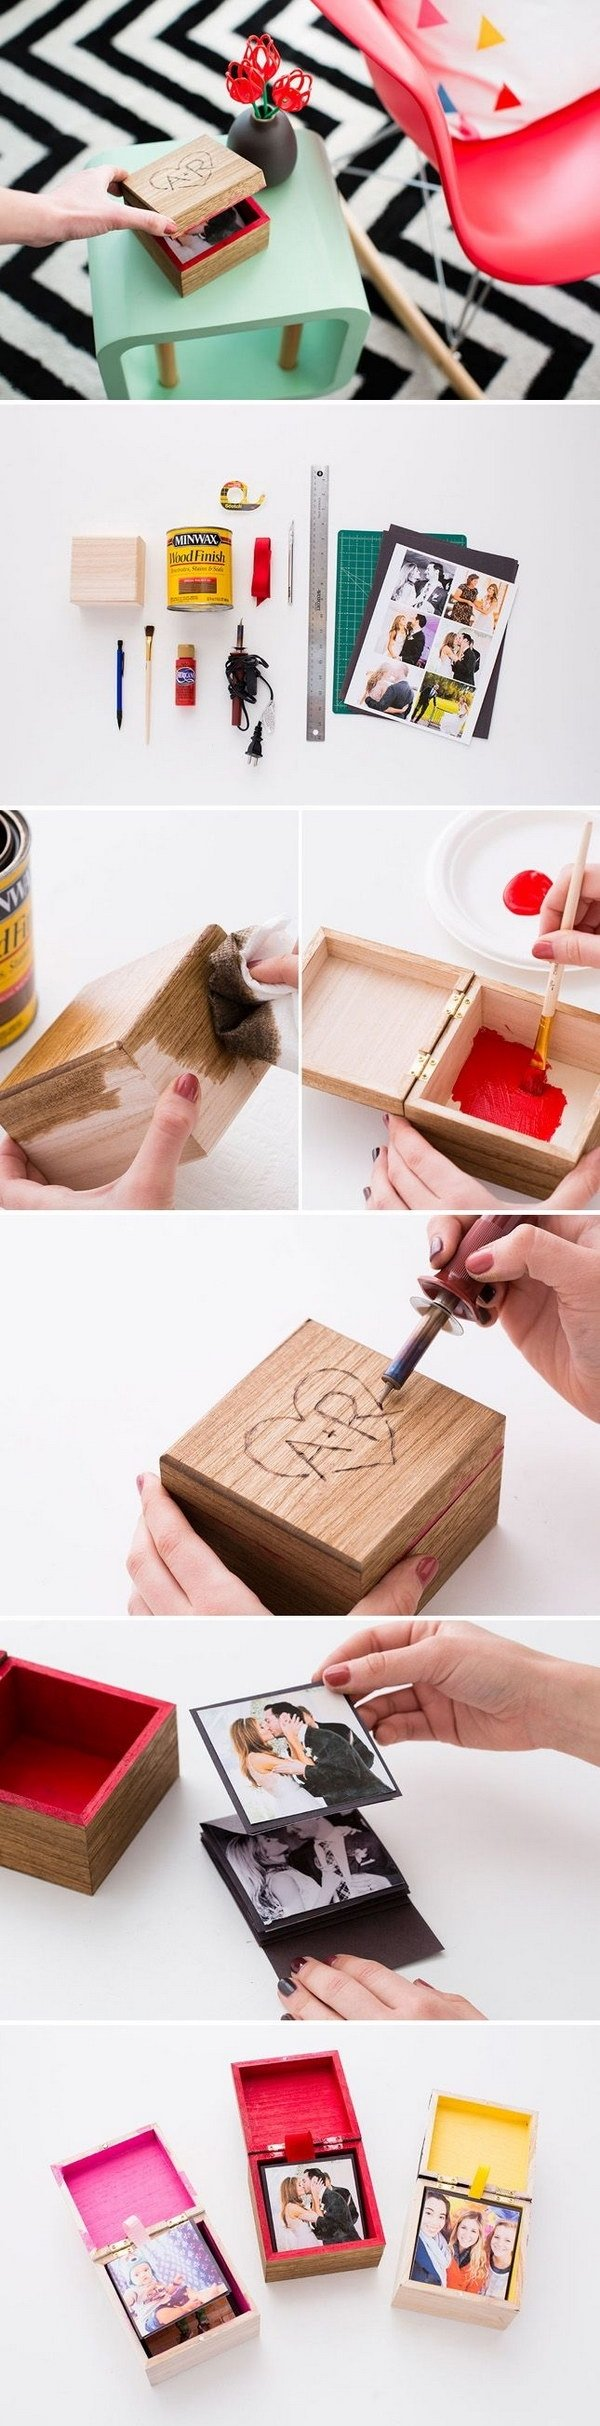 10 Elegant Diy Christmas Gift Ideas For Boyfriend 25 diy gifts for him with lots of tutorials 2017 1 2021